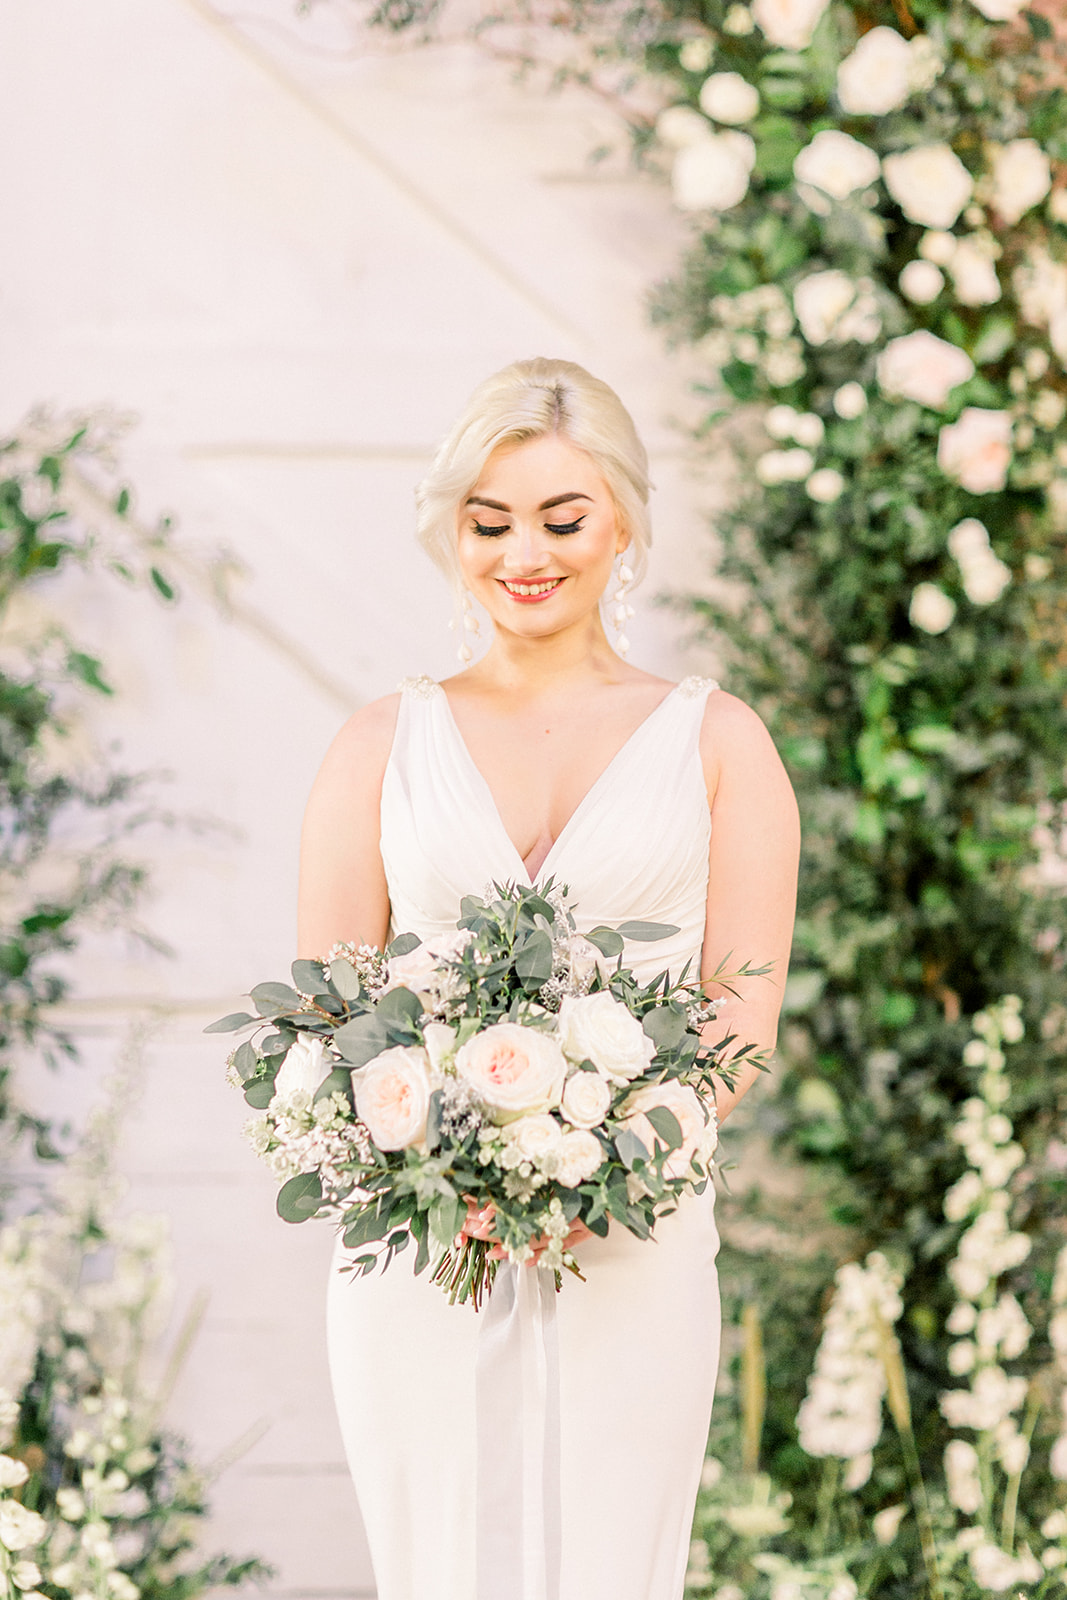 Floral arch and bridal bouquet by Petal and Wild at The Railway Barn.jpg